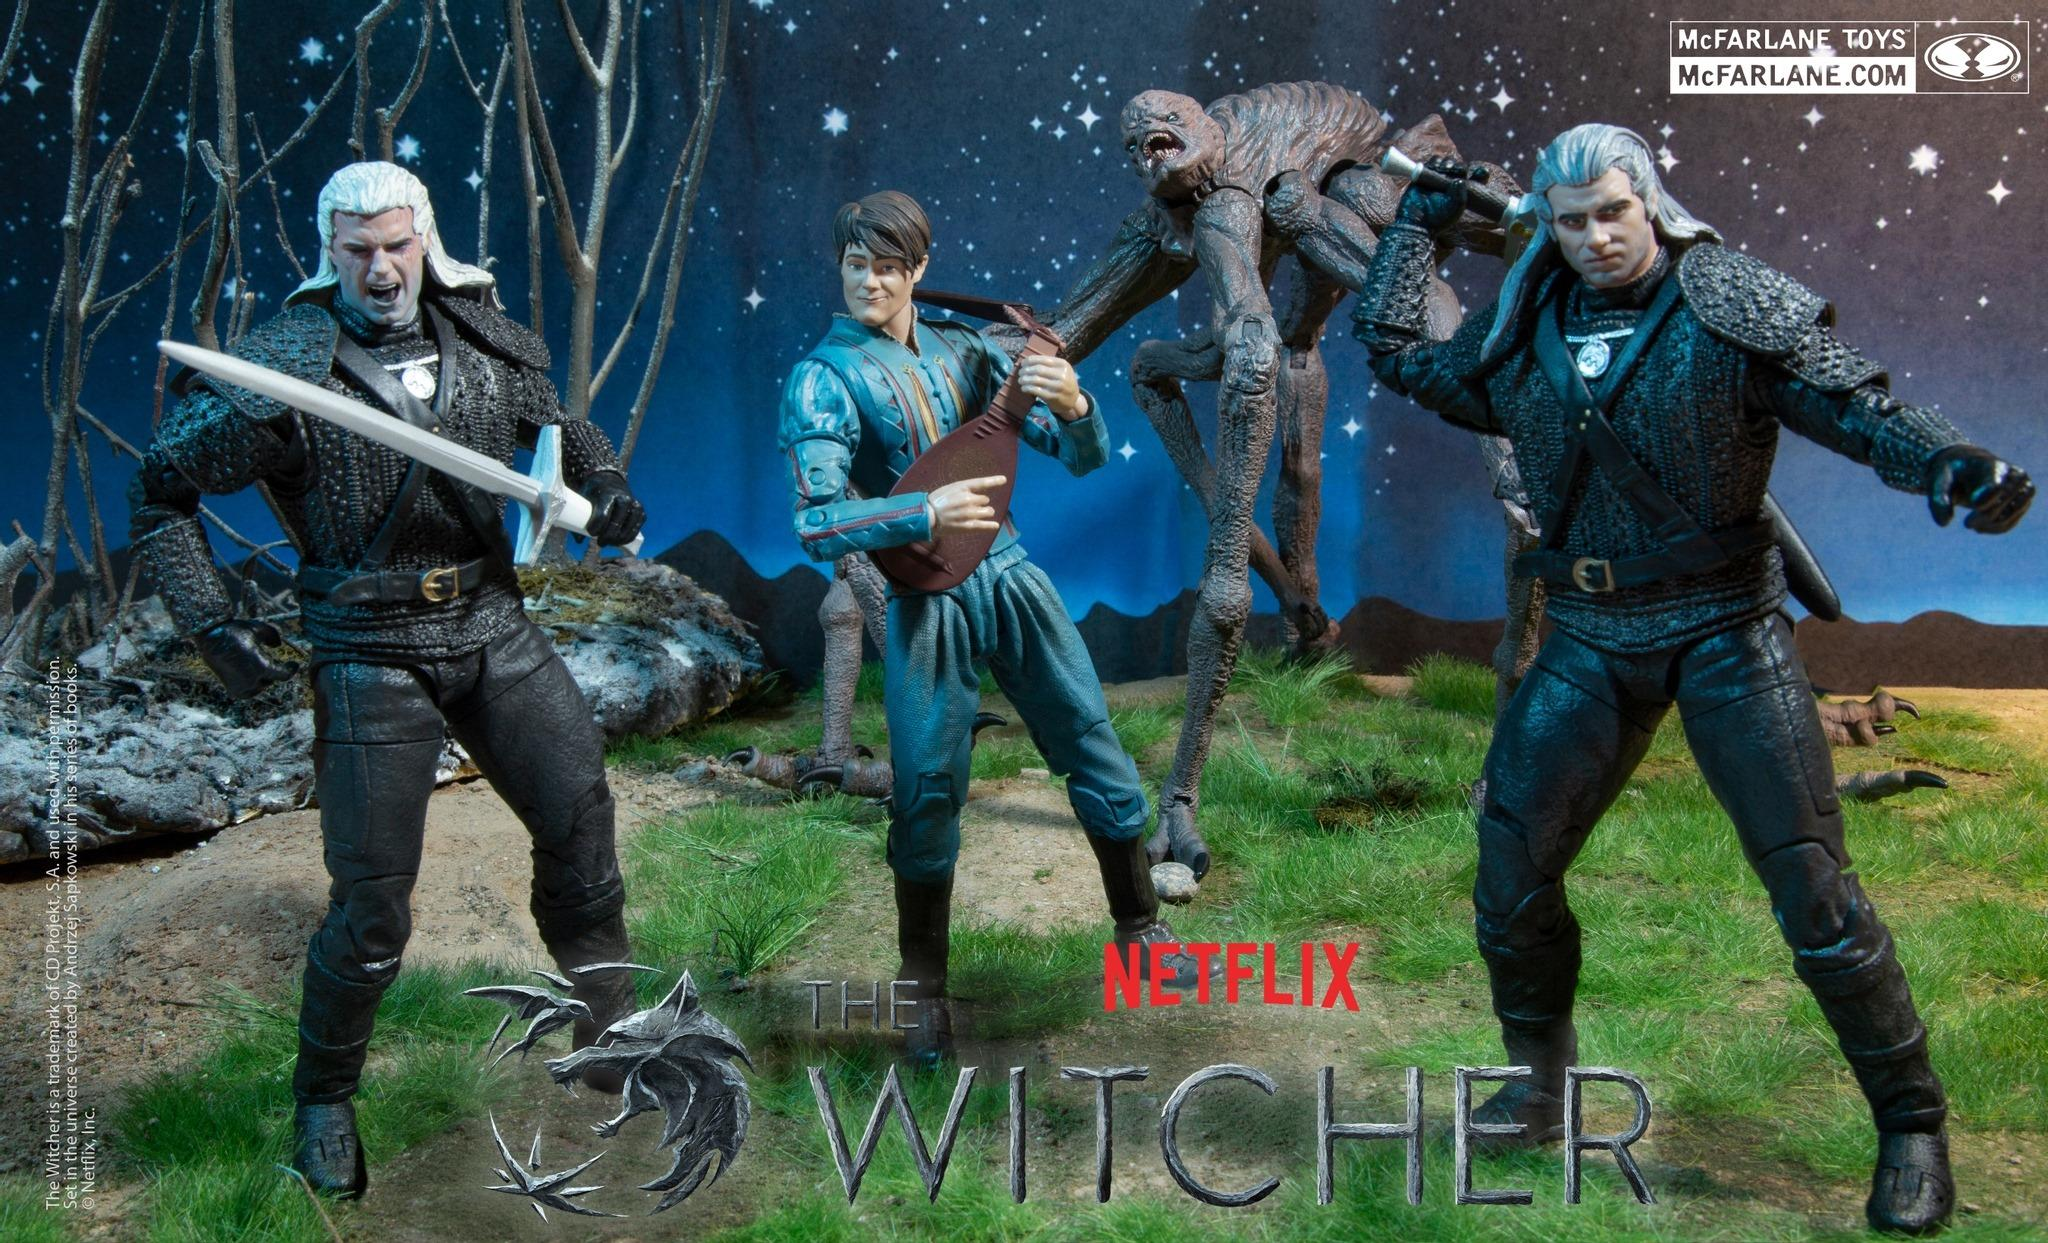 mcfarlane-toys-the-witcher-figures.jpg